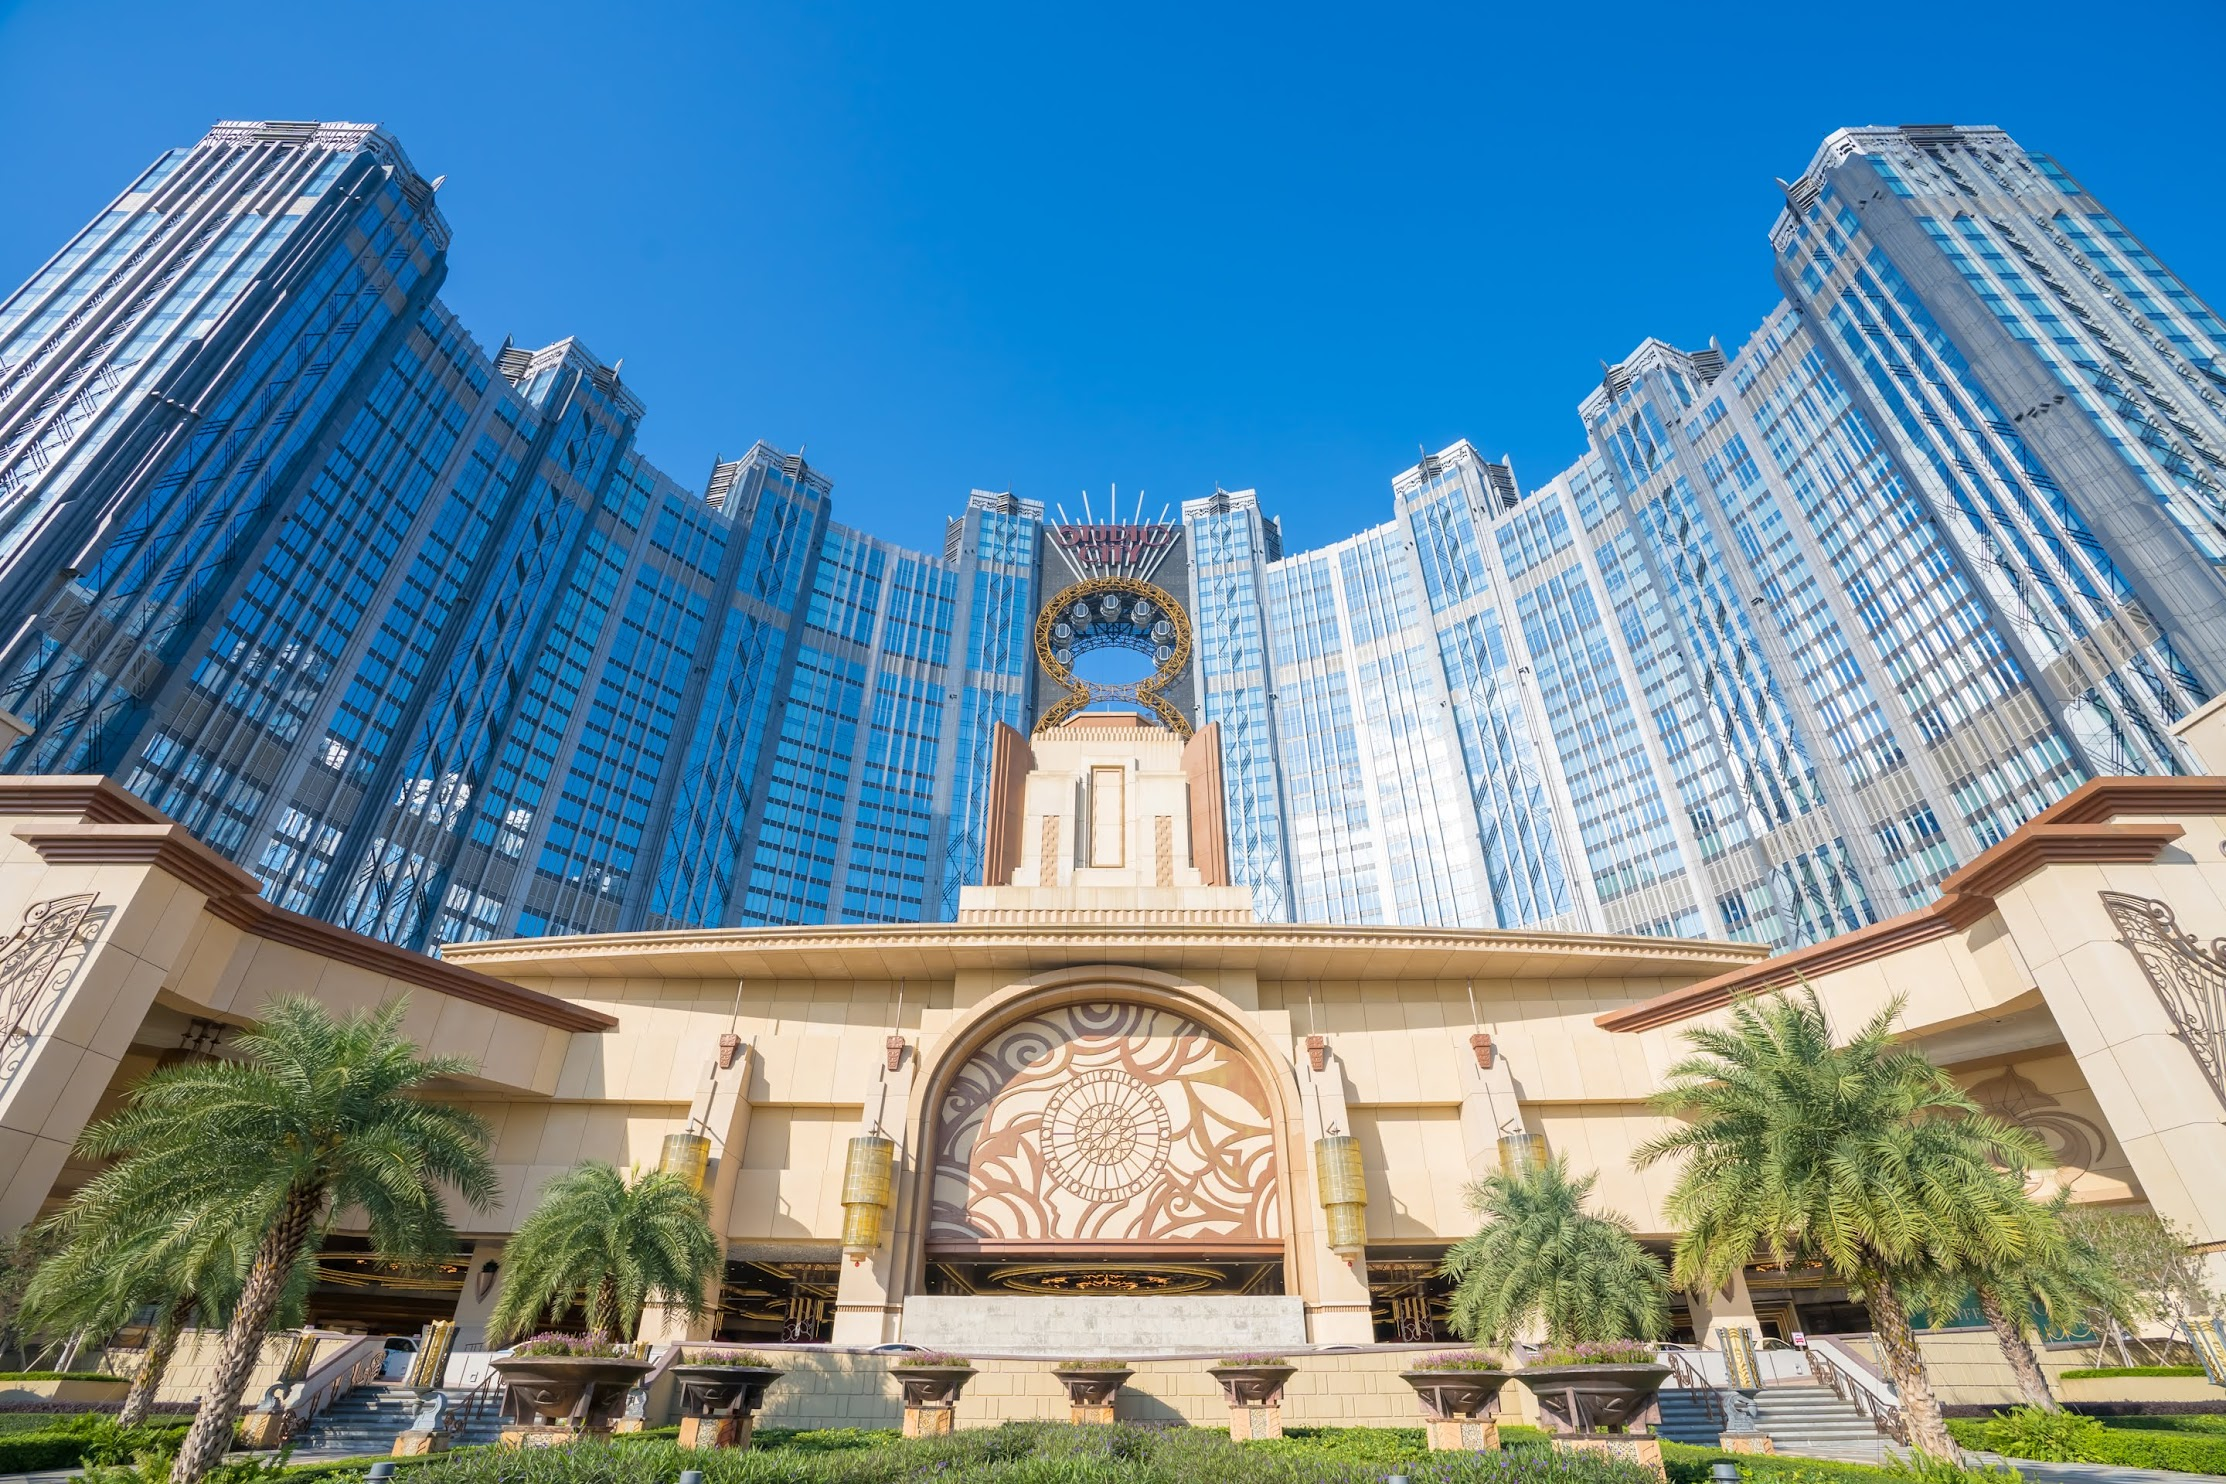 Studio City Macau2